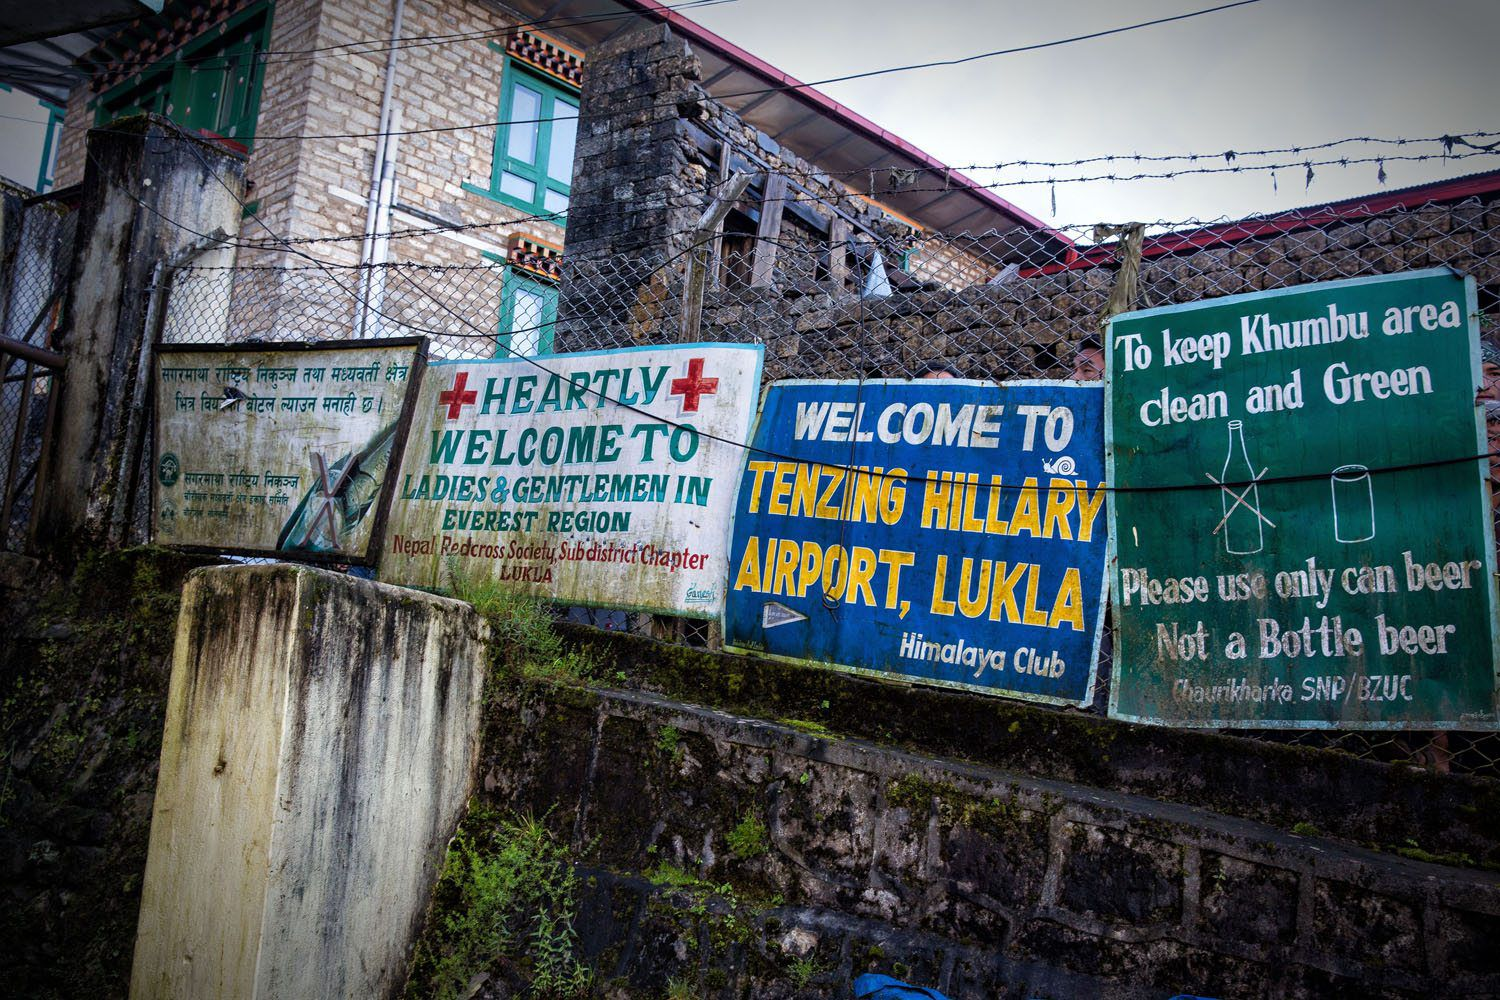 lukla airport signs